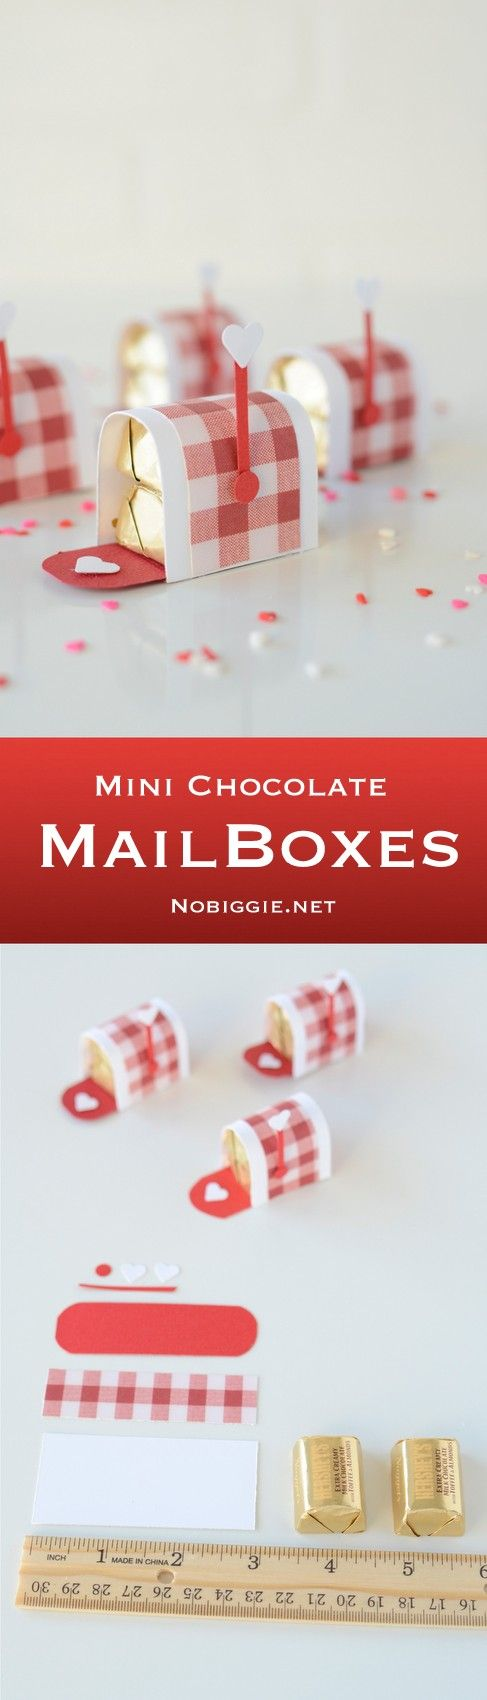 Mini Chocolate Mailboxes.